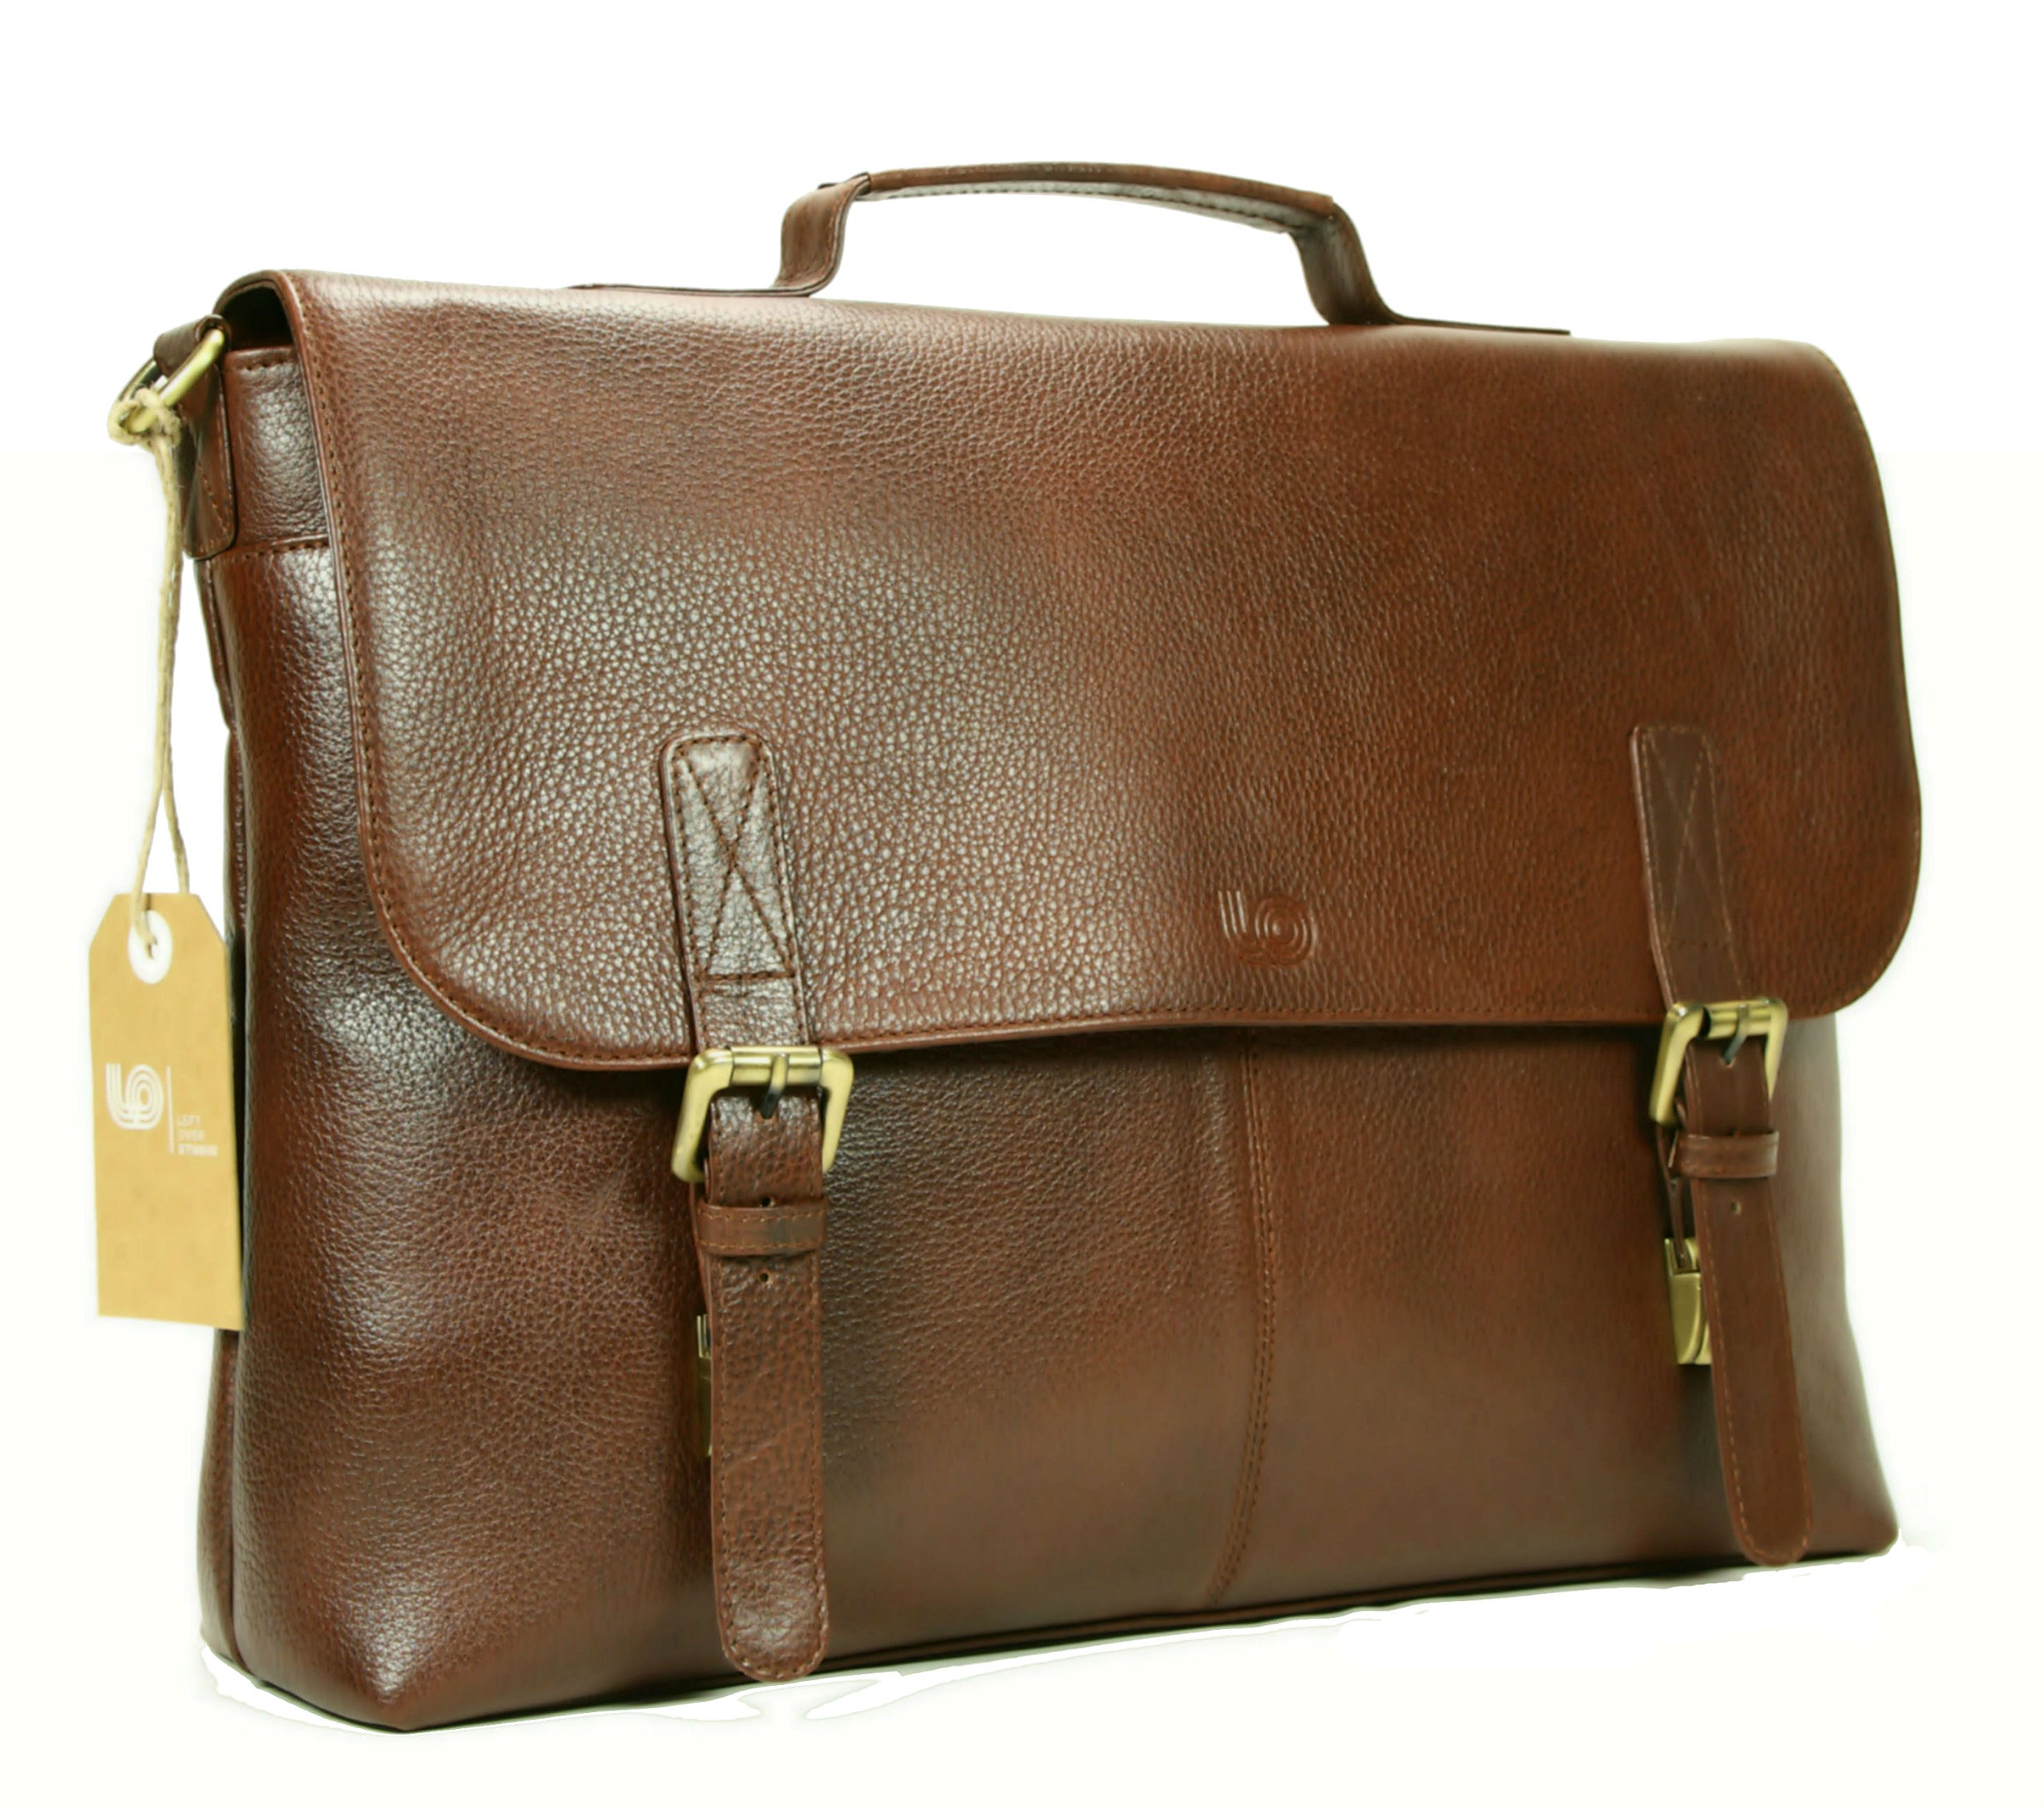 Leather Laptop Briefcase / Messenger Bag / Mens Satchel / Office Work Bag in Brown Top Grain Cow Leather by LeftOver Studio